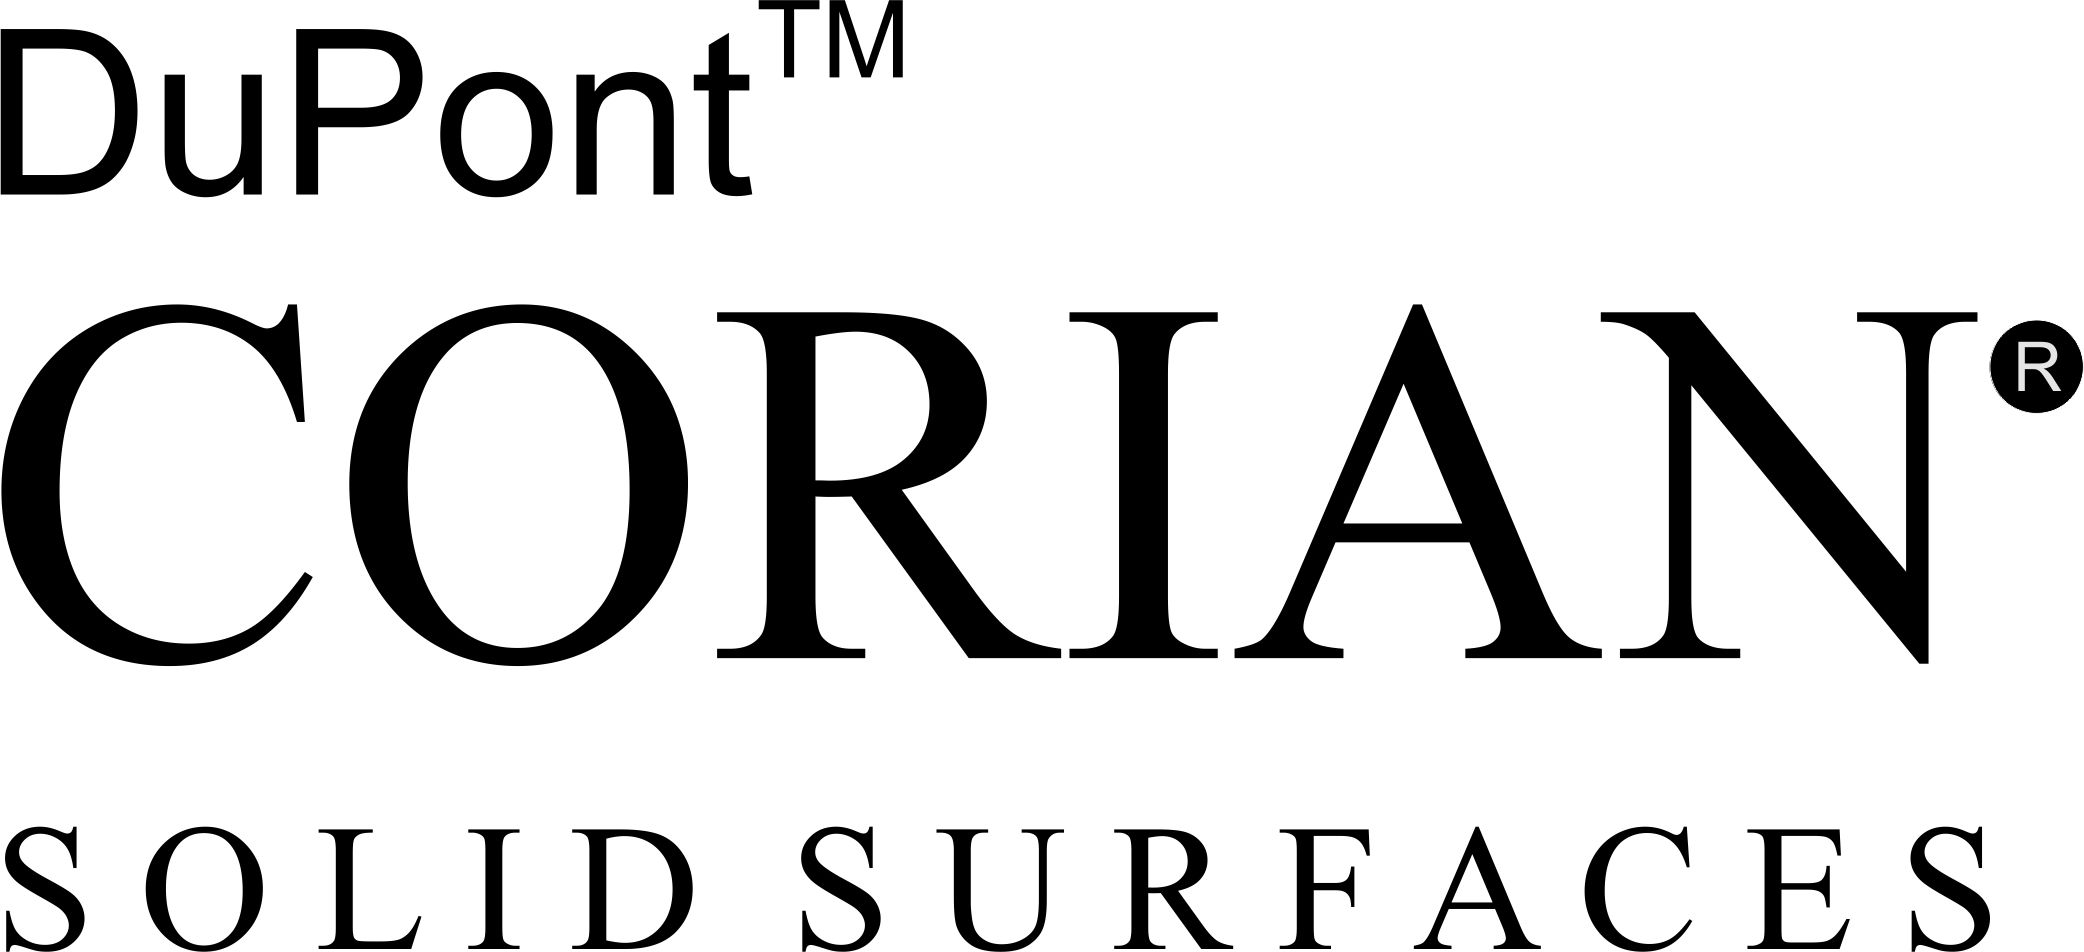 DuPont Corian Surfaces in Cape Cod MA Remodeling Projects